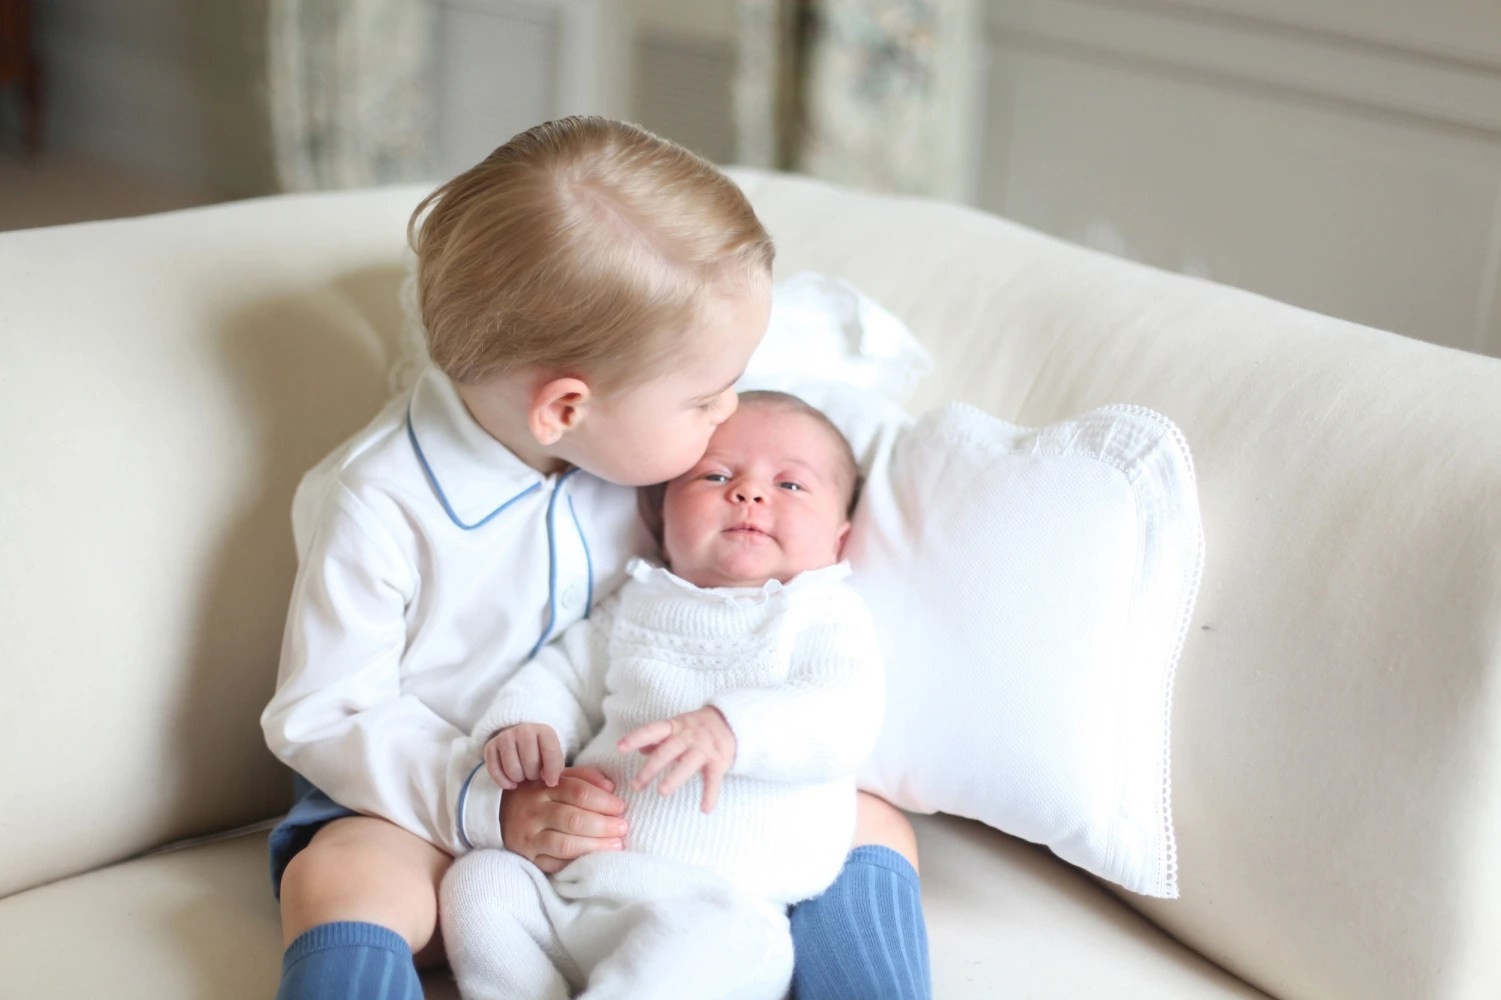 See new photo of Princess Charlotte ahead of birthday